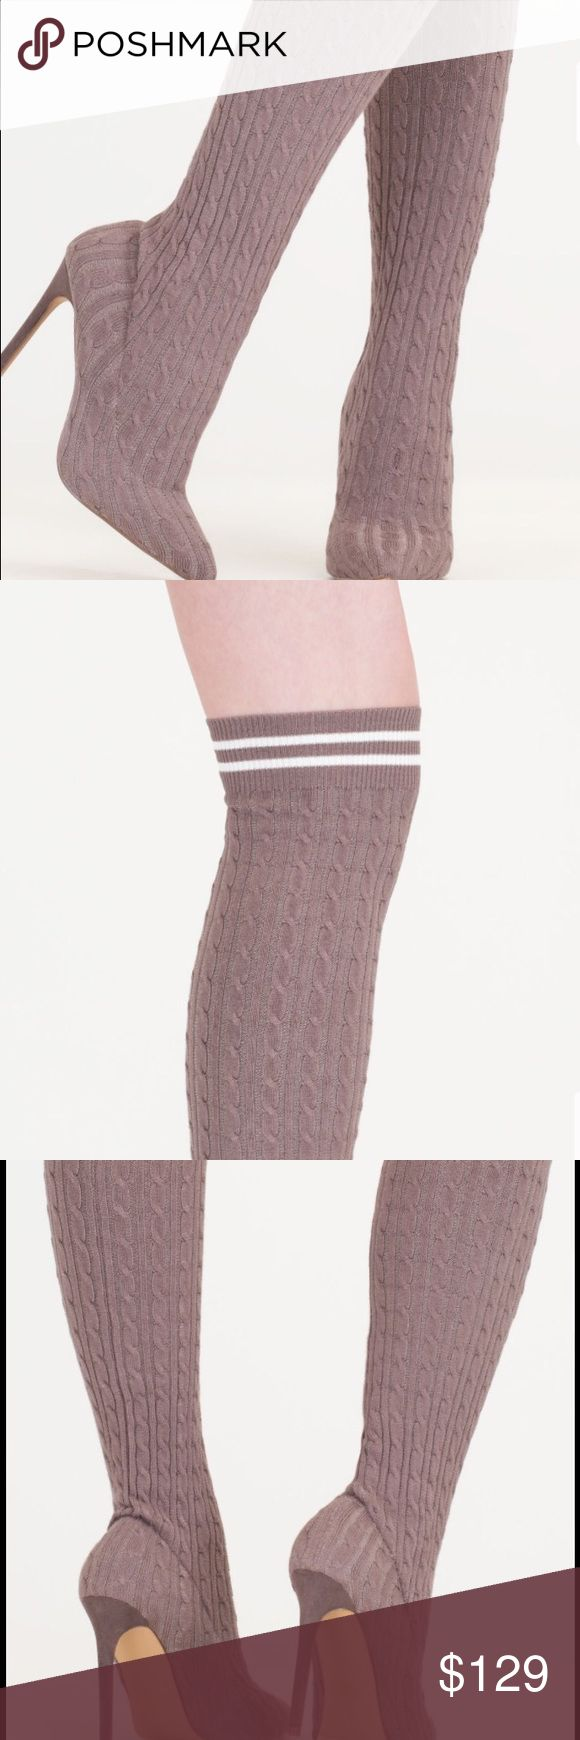 Grey over the knee sock stiletto bootie Grey over the knee sock stiletto bootie. Stretchy cable knit sock boot with a sporty stripe accent. 4.25 stiletto heel.New in box. Never worn. If box won't fit a priority mailer will ship without the box. Ships within 7 business days. boutique Shoes Over the Knee Boots